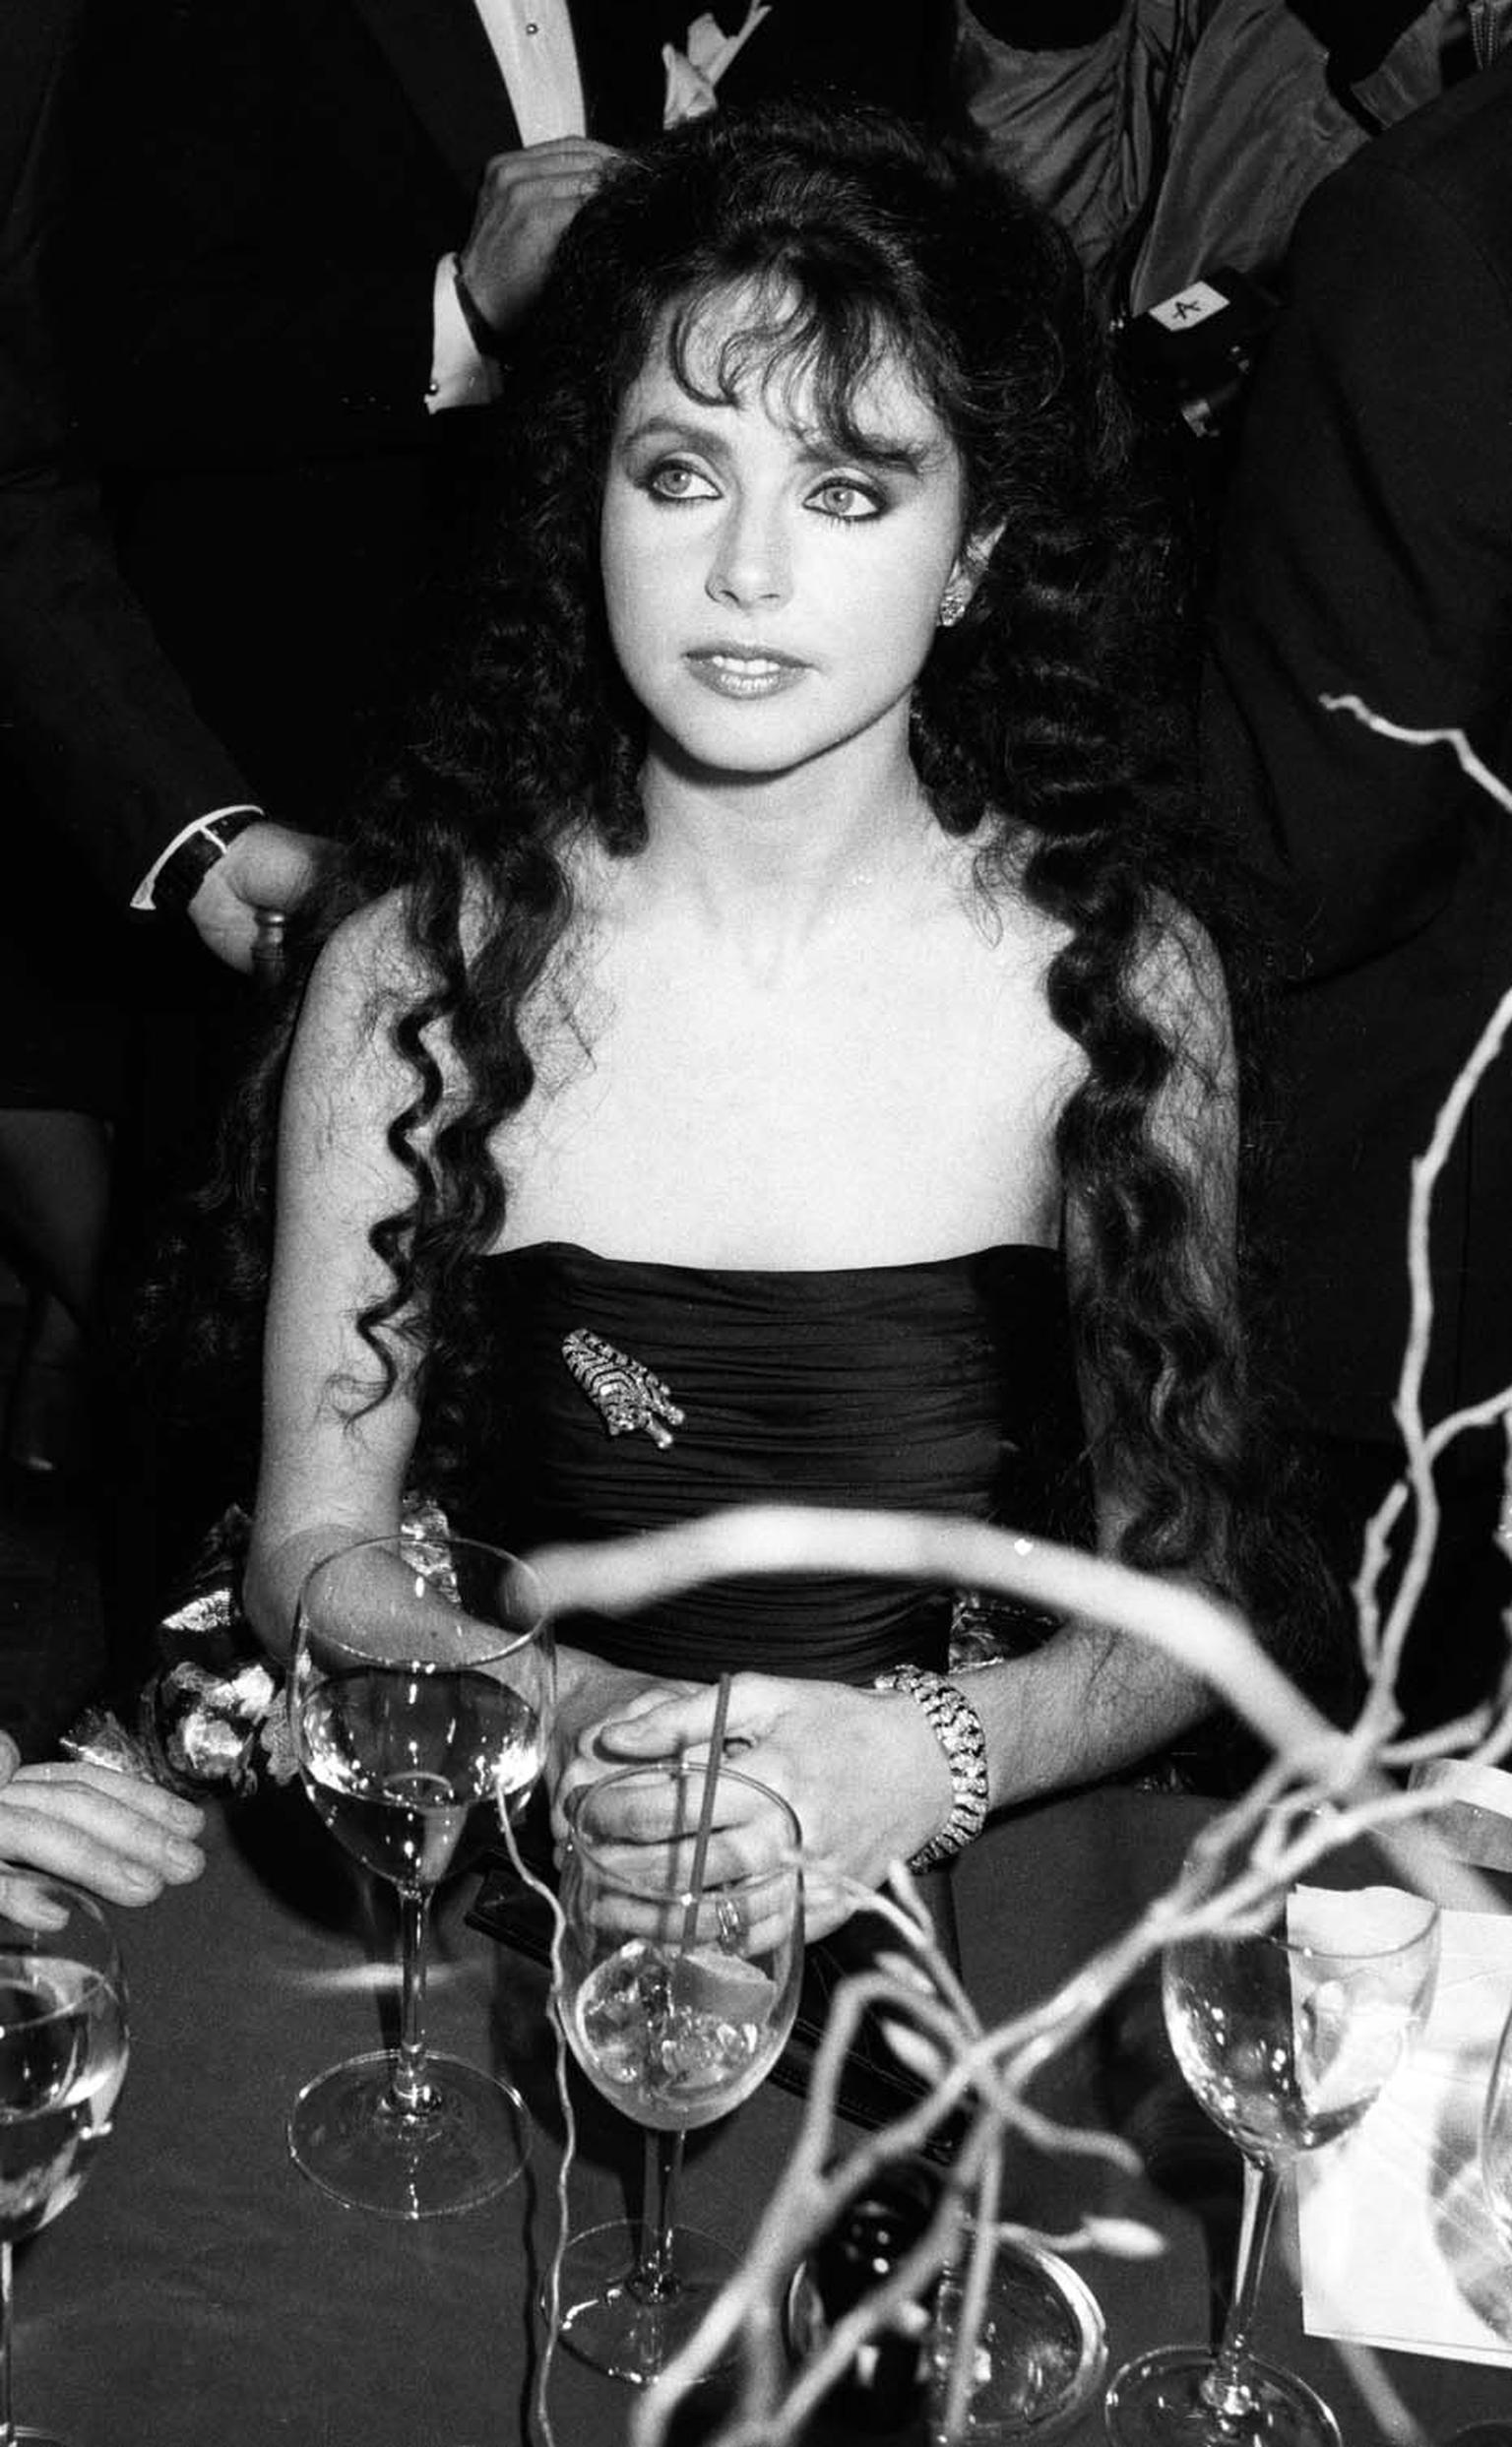 Sarah Brightman wearing the Cartier Tiger brooch at The Phantom of the Opera opening party in New York's Beacon Theatre in 1988. ©Getty Images/Wire Image.